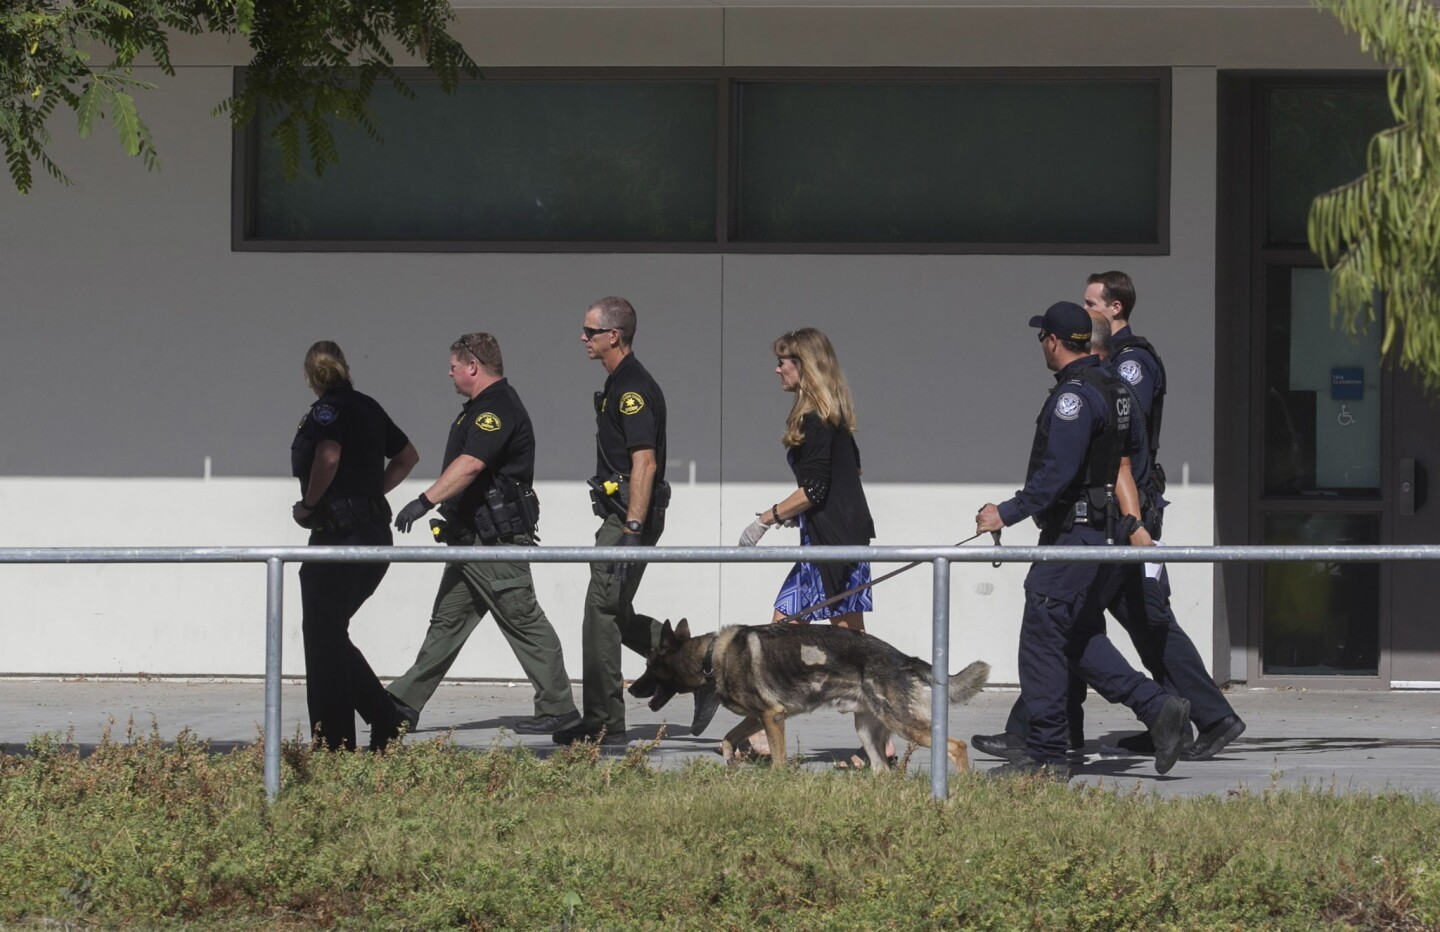 Sheriff's and CBP officers walked through the Grossmont High School campus where students were locked down at 8:45 a.m. Thursday after a student reported seeing what they thought was a gun in a students back pack.